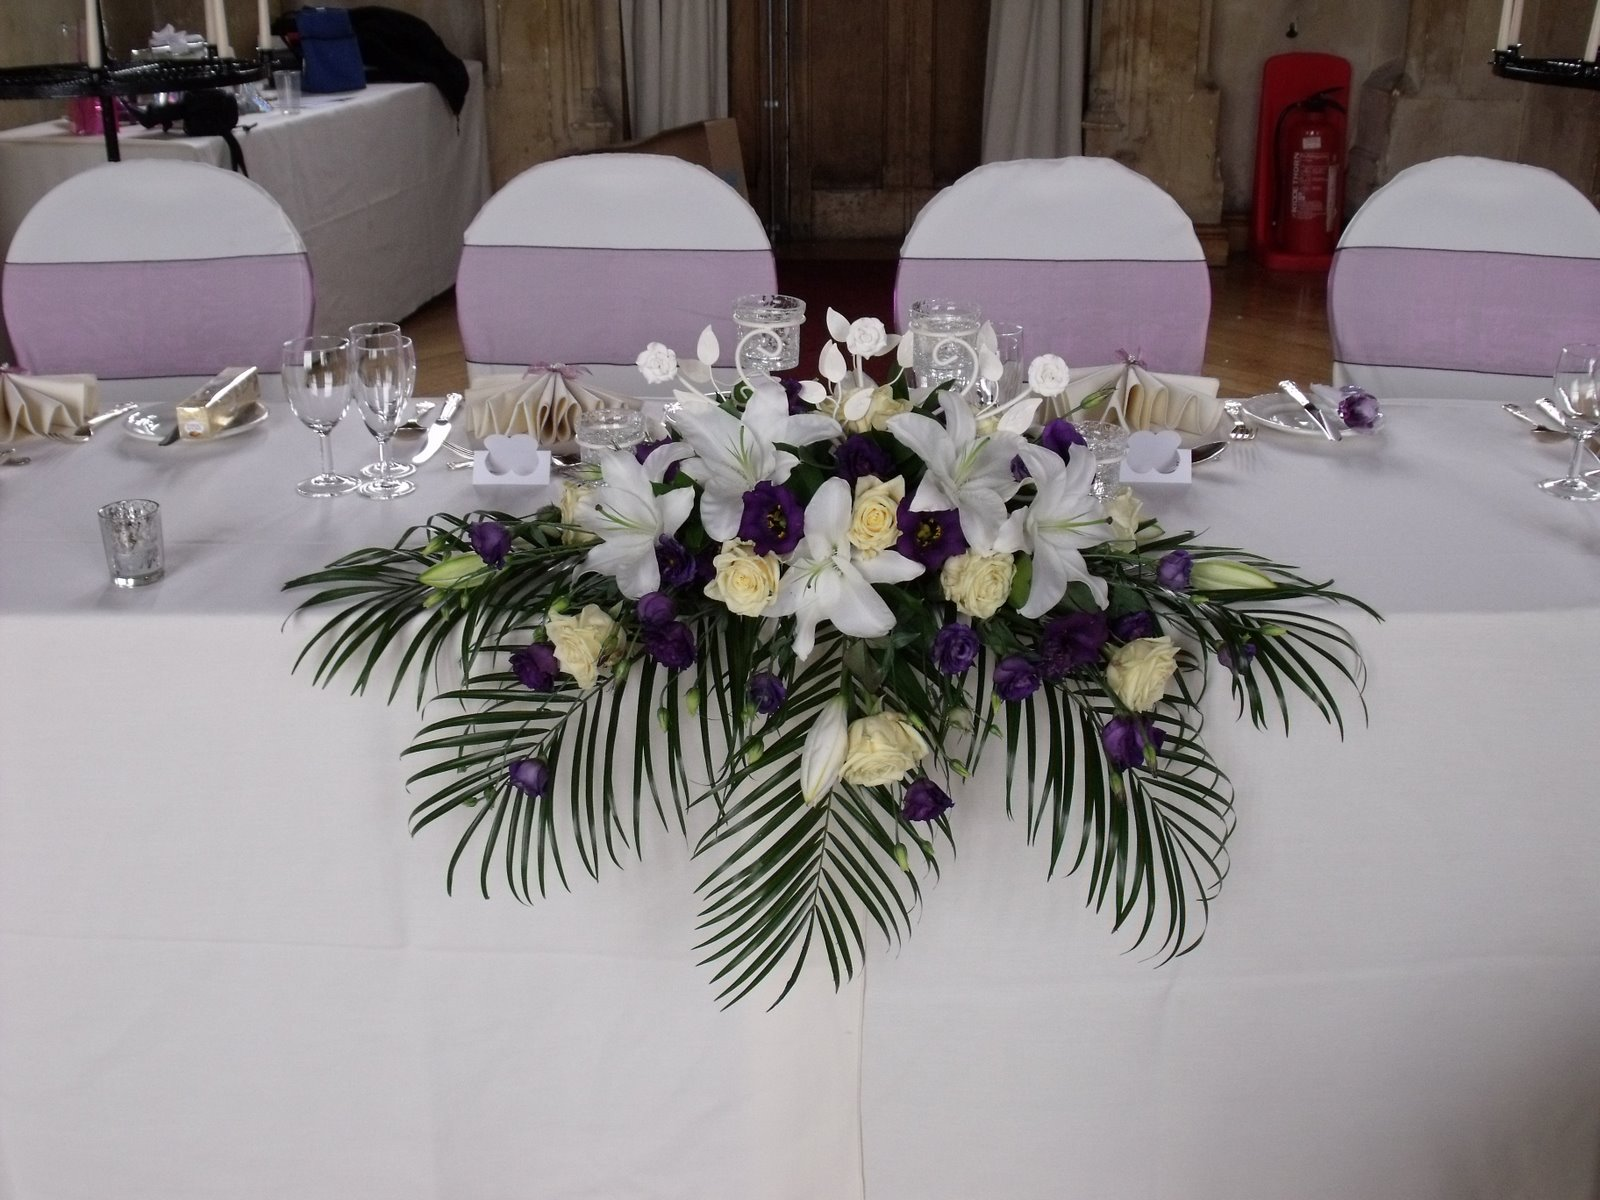 Party balloons 4 you wedding decorations at ashton court - Flowers for table decorations ...